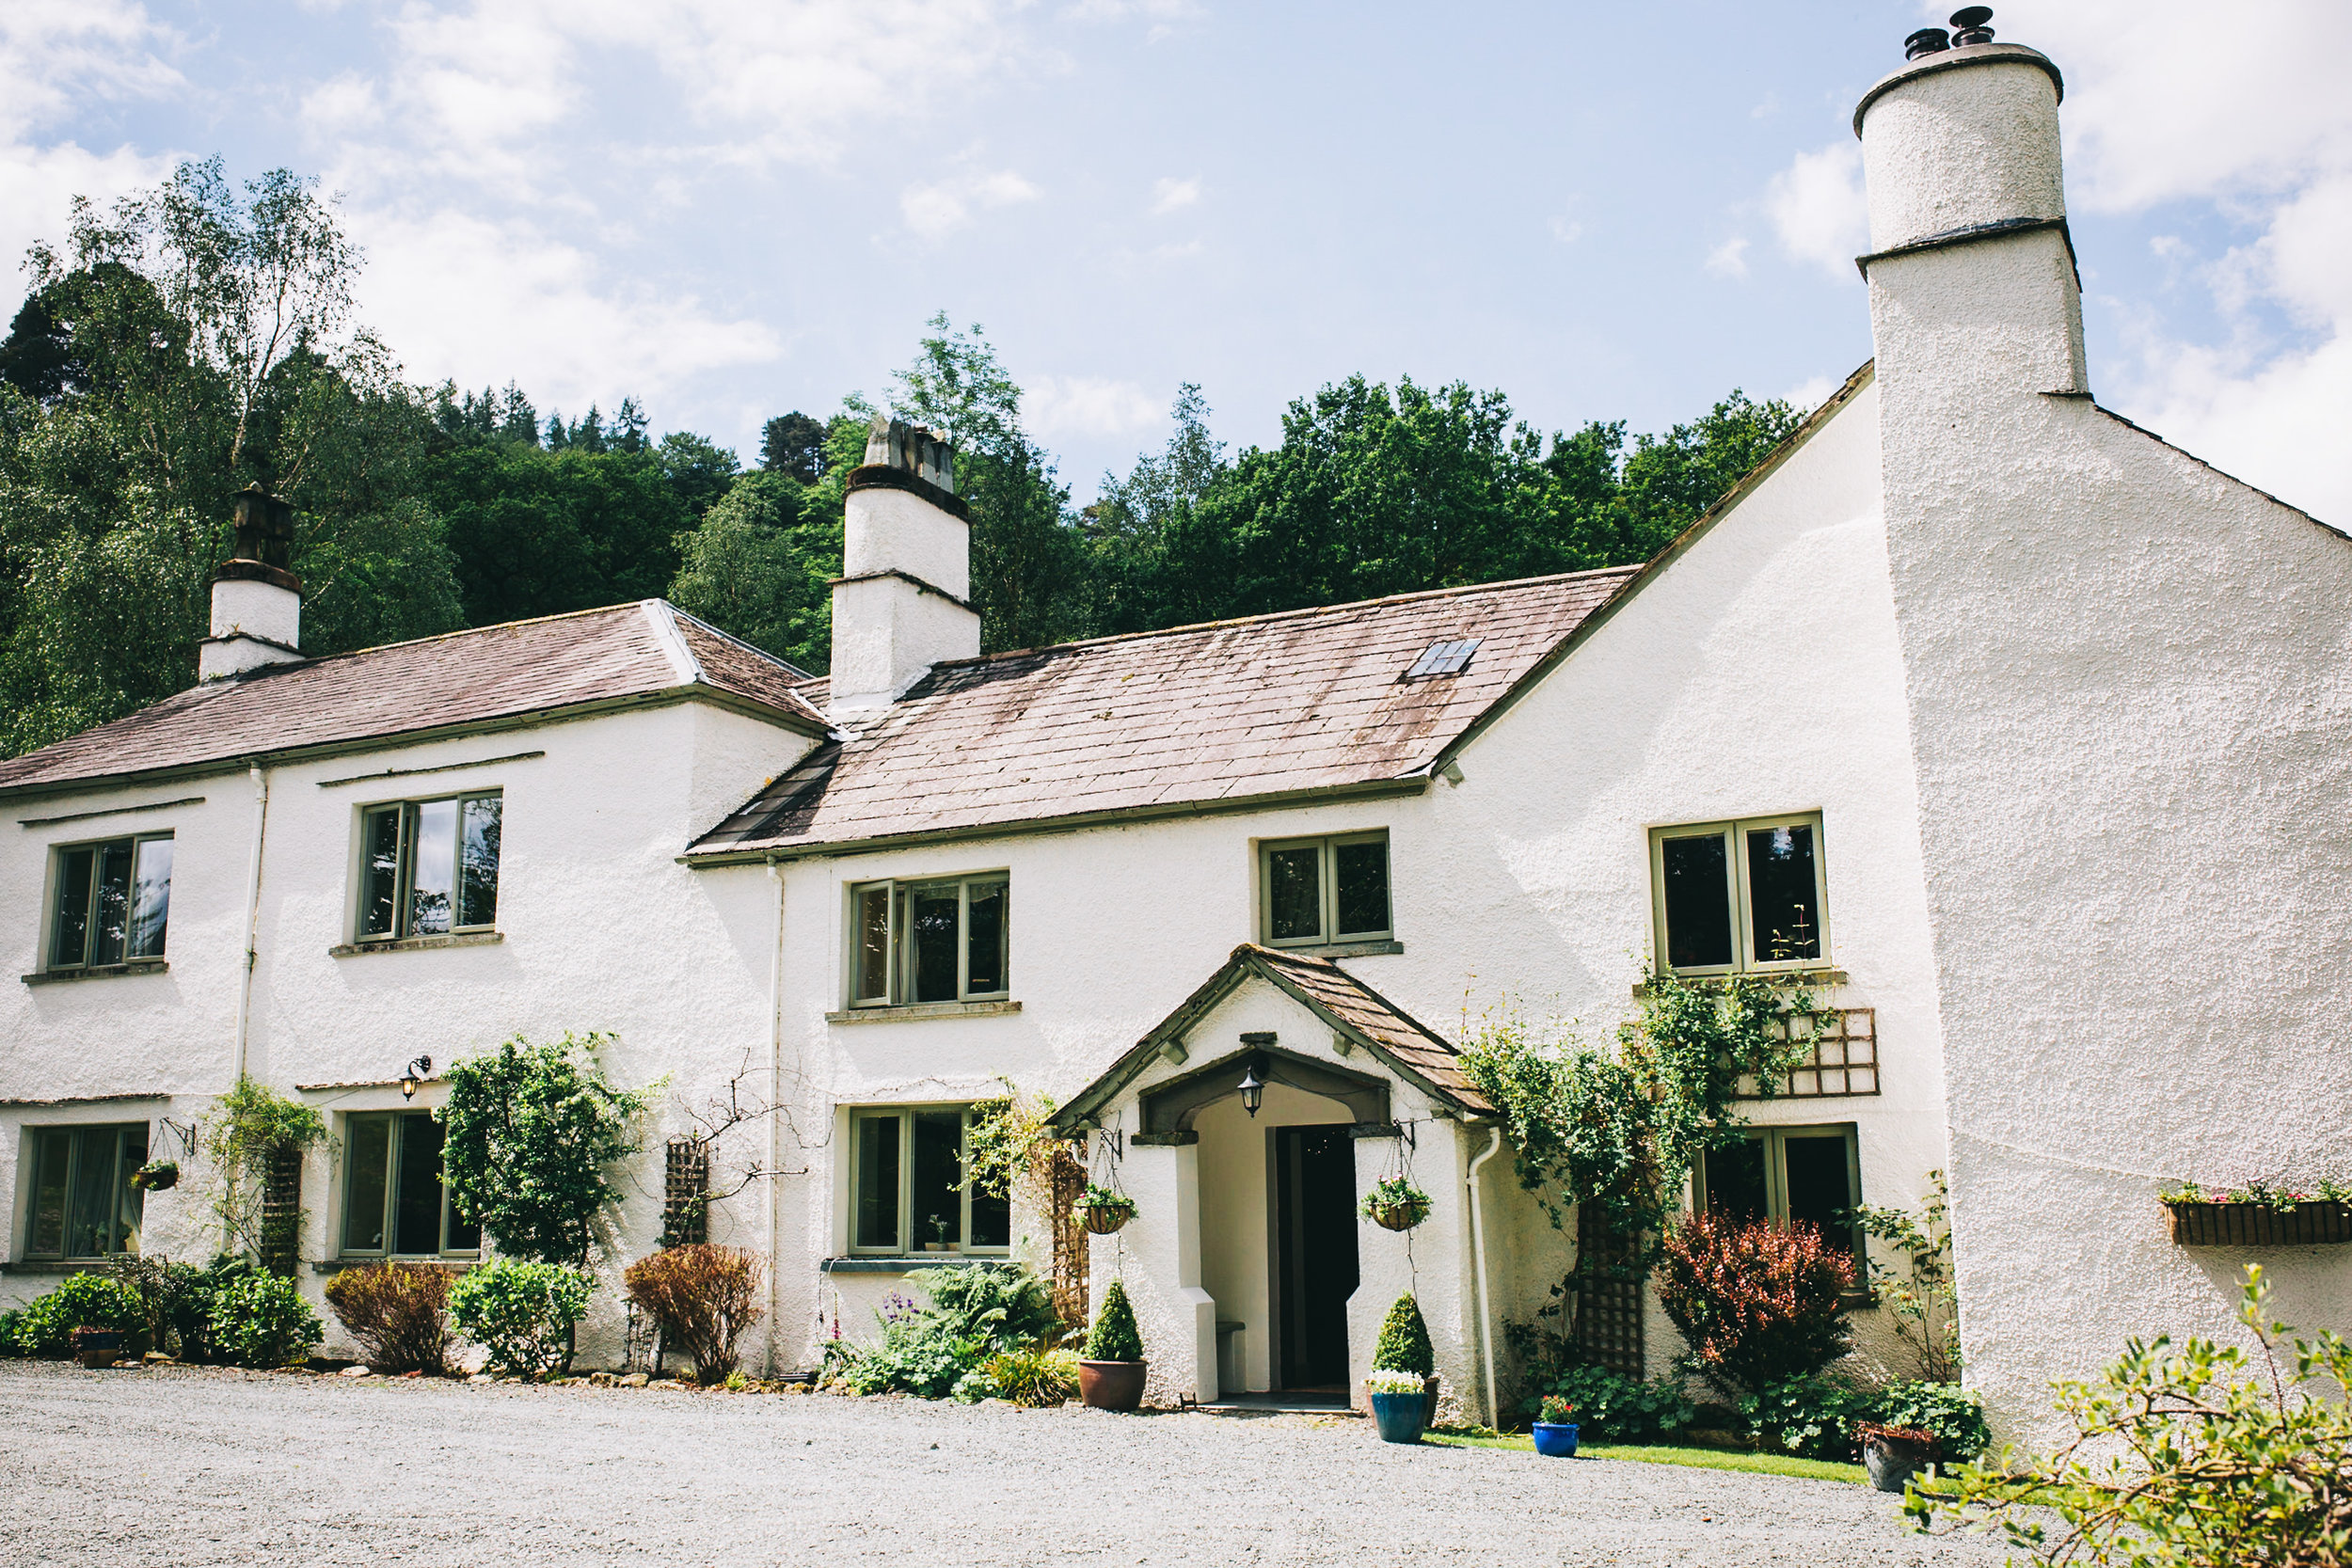 exterior of Cote how wedding venue - Lake District wedding photography